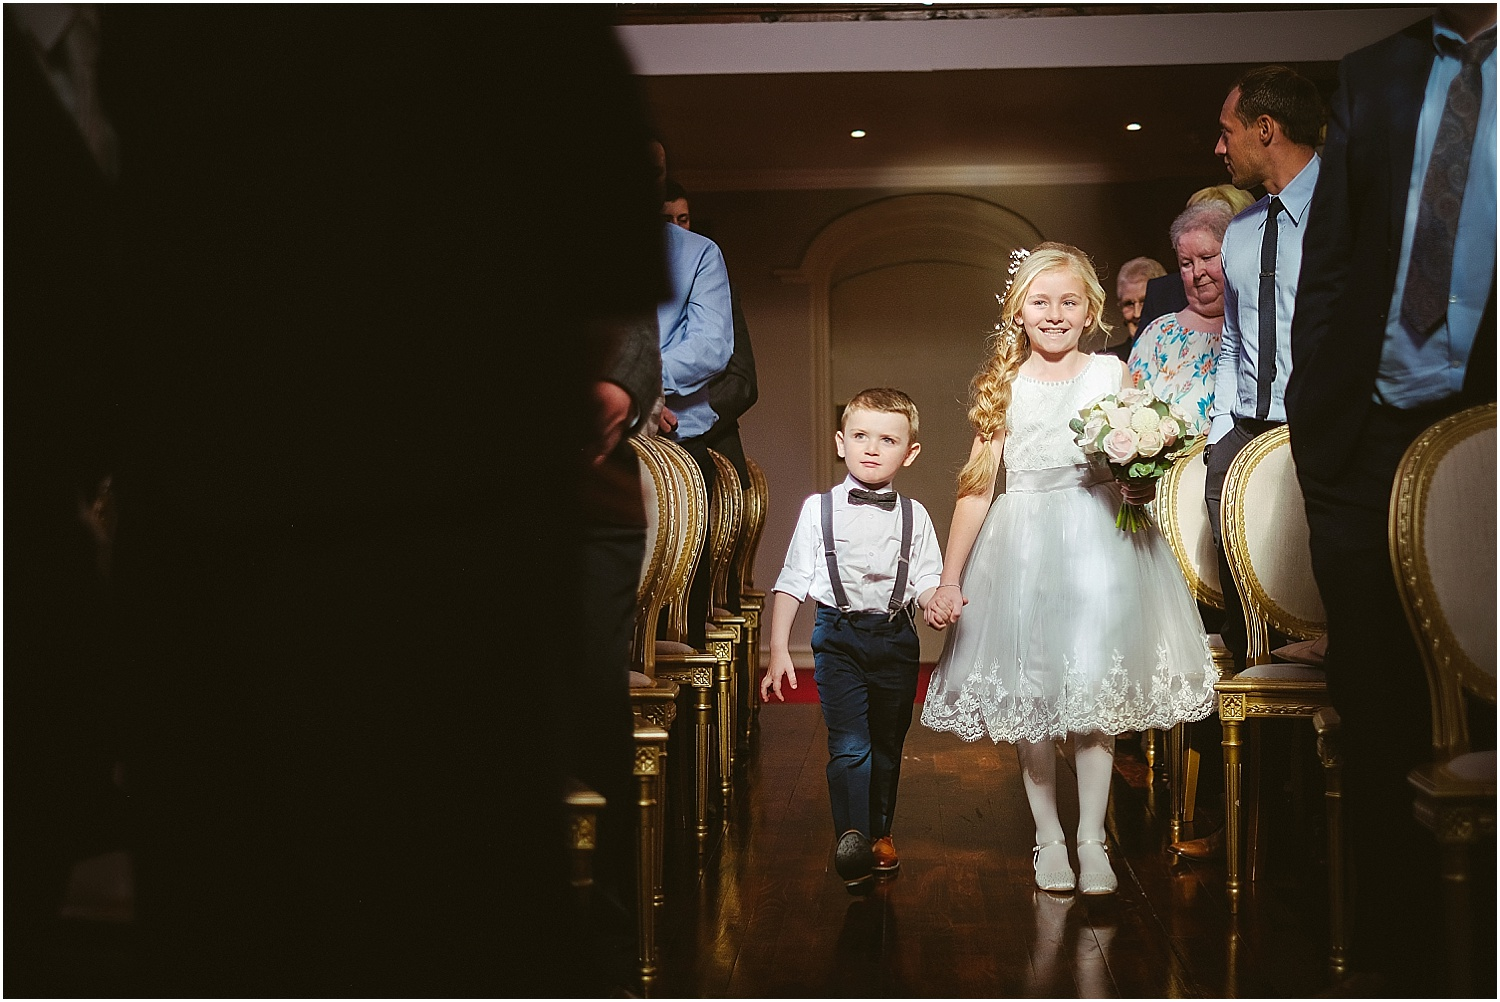 Lartington Hall weddings by www.2tonephotography.co.uk 032.jpg